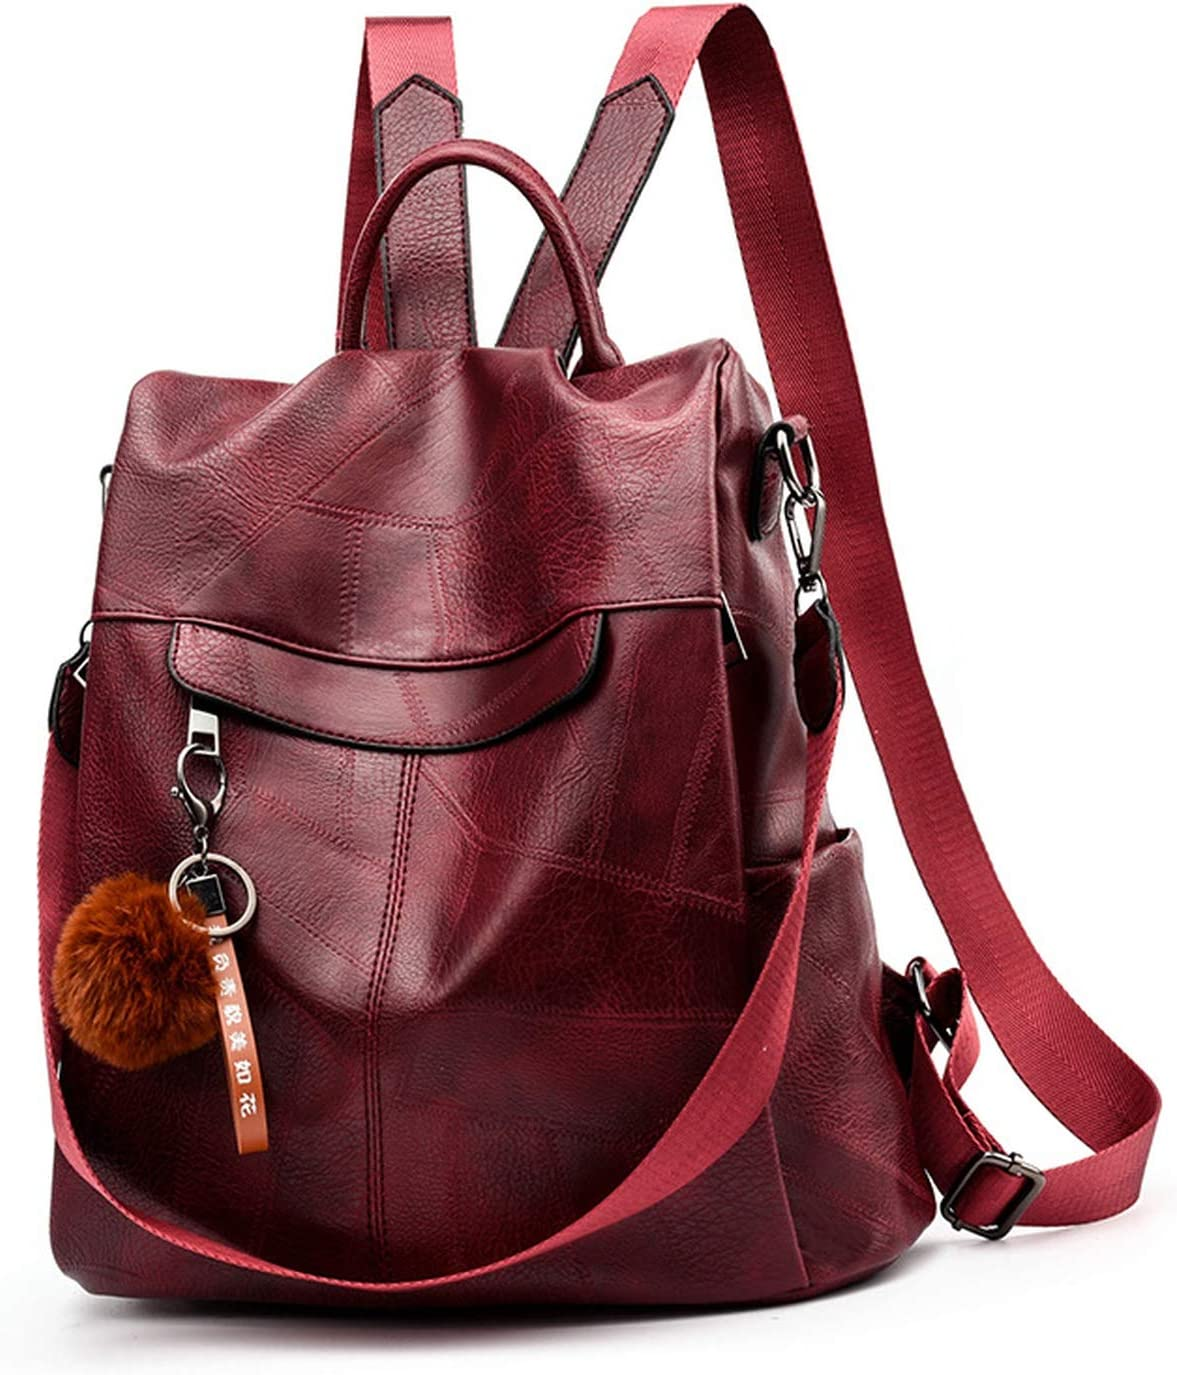 2019 Backpack Women Shoulder School Bags for Teenage Girls Vintage Leather Anti Theft Backpack Mochila Mujer Back Pack Lady,Bordeaux red